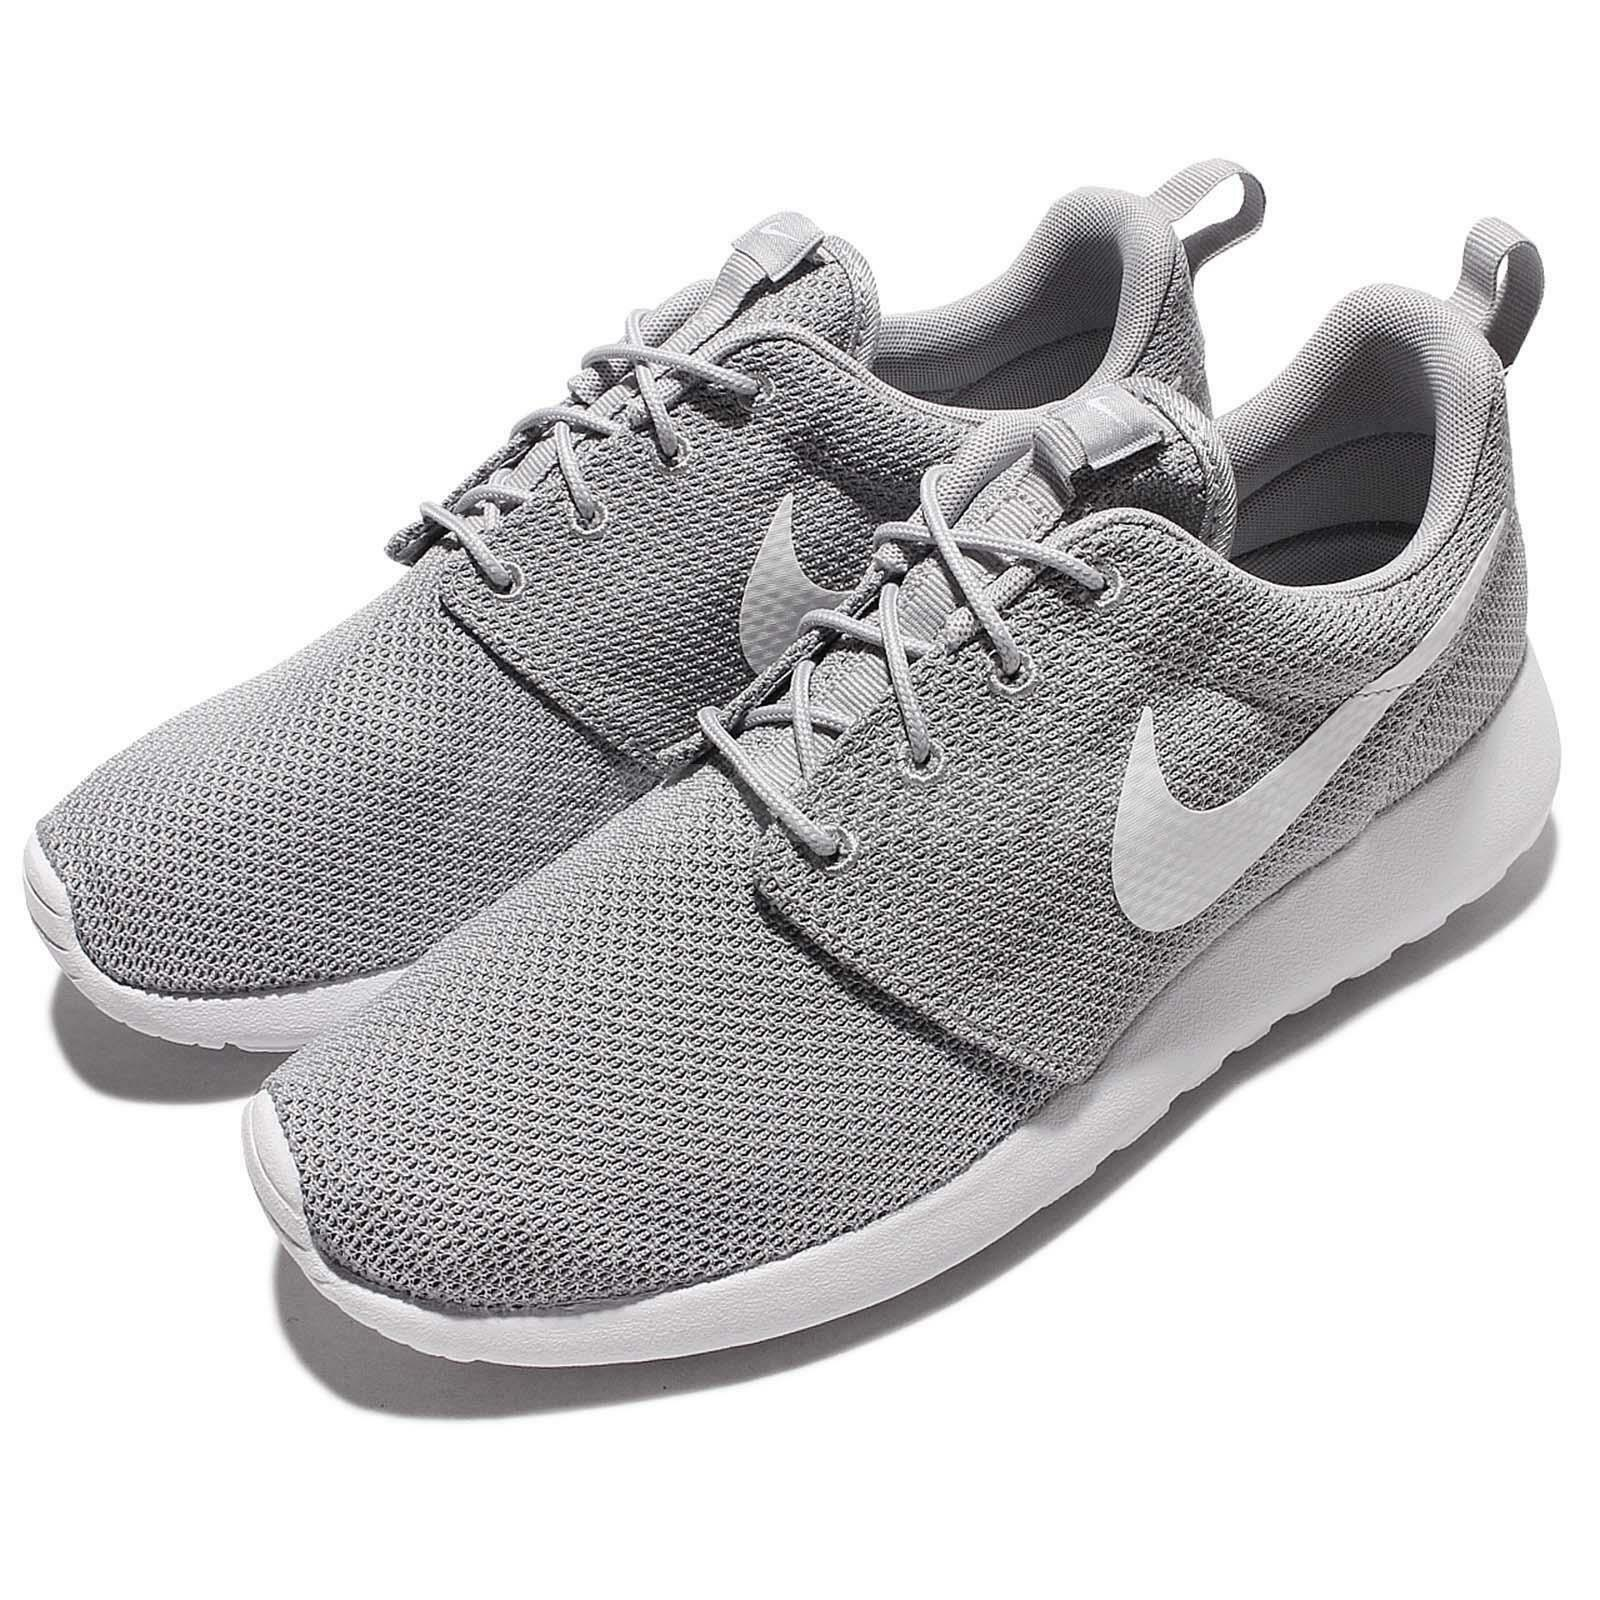 Nike Rosherun Roshe One Run Grey White Men Running shoes Sneakers 511881-023